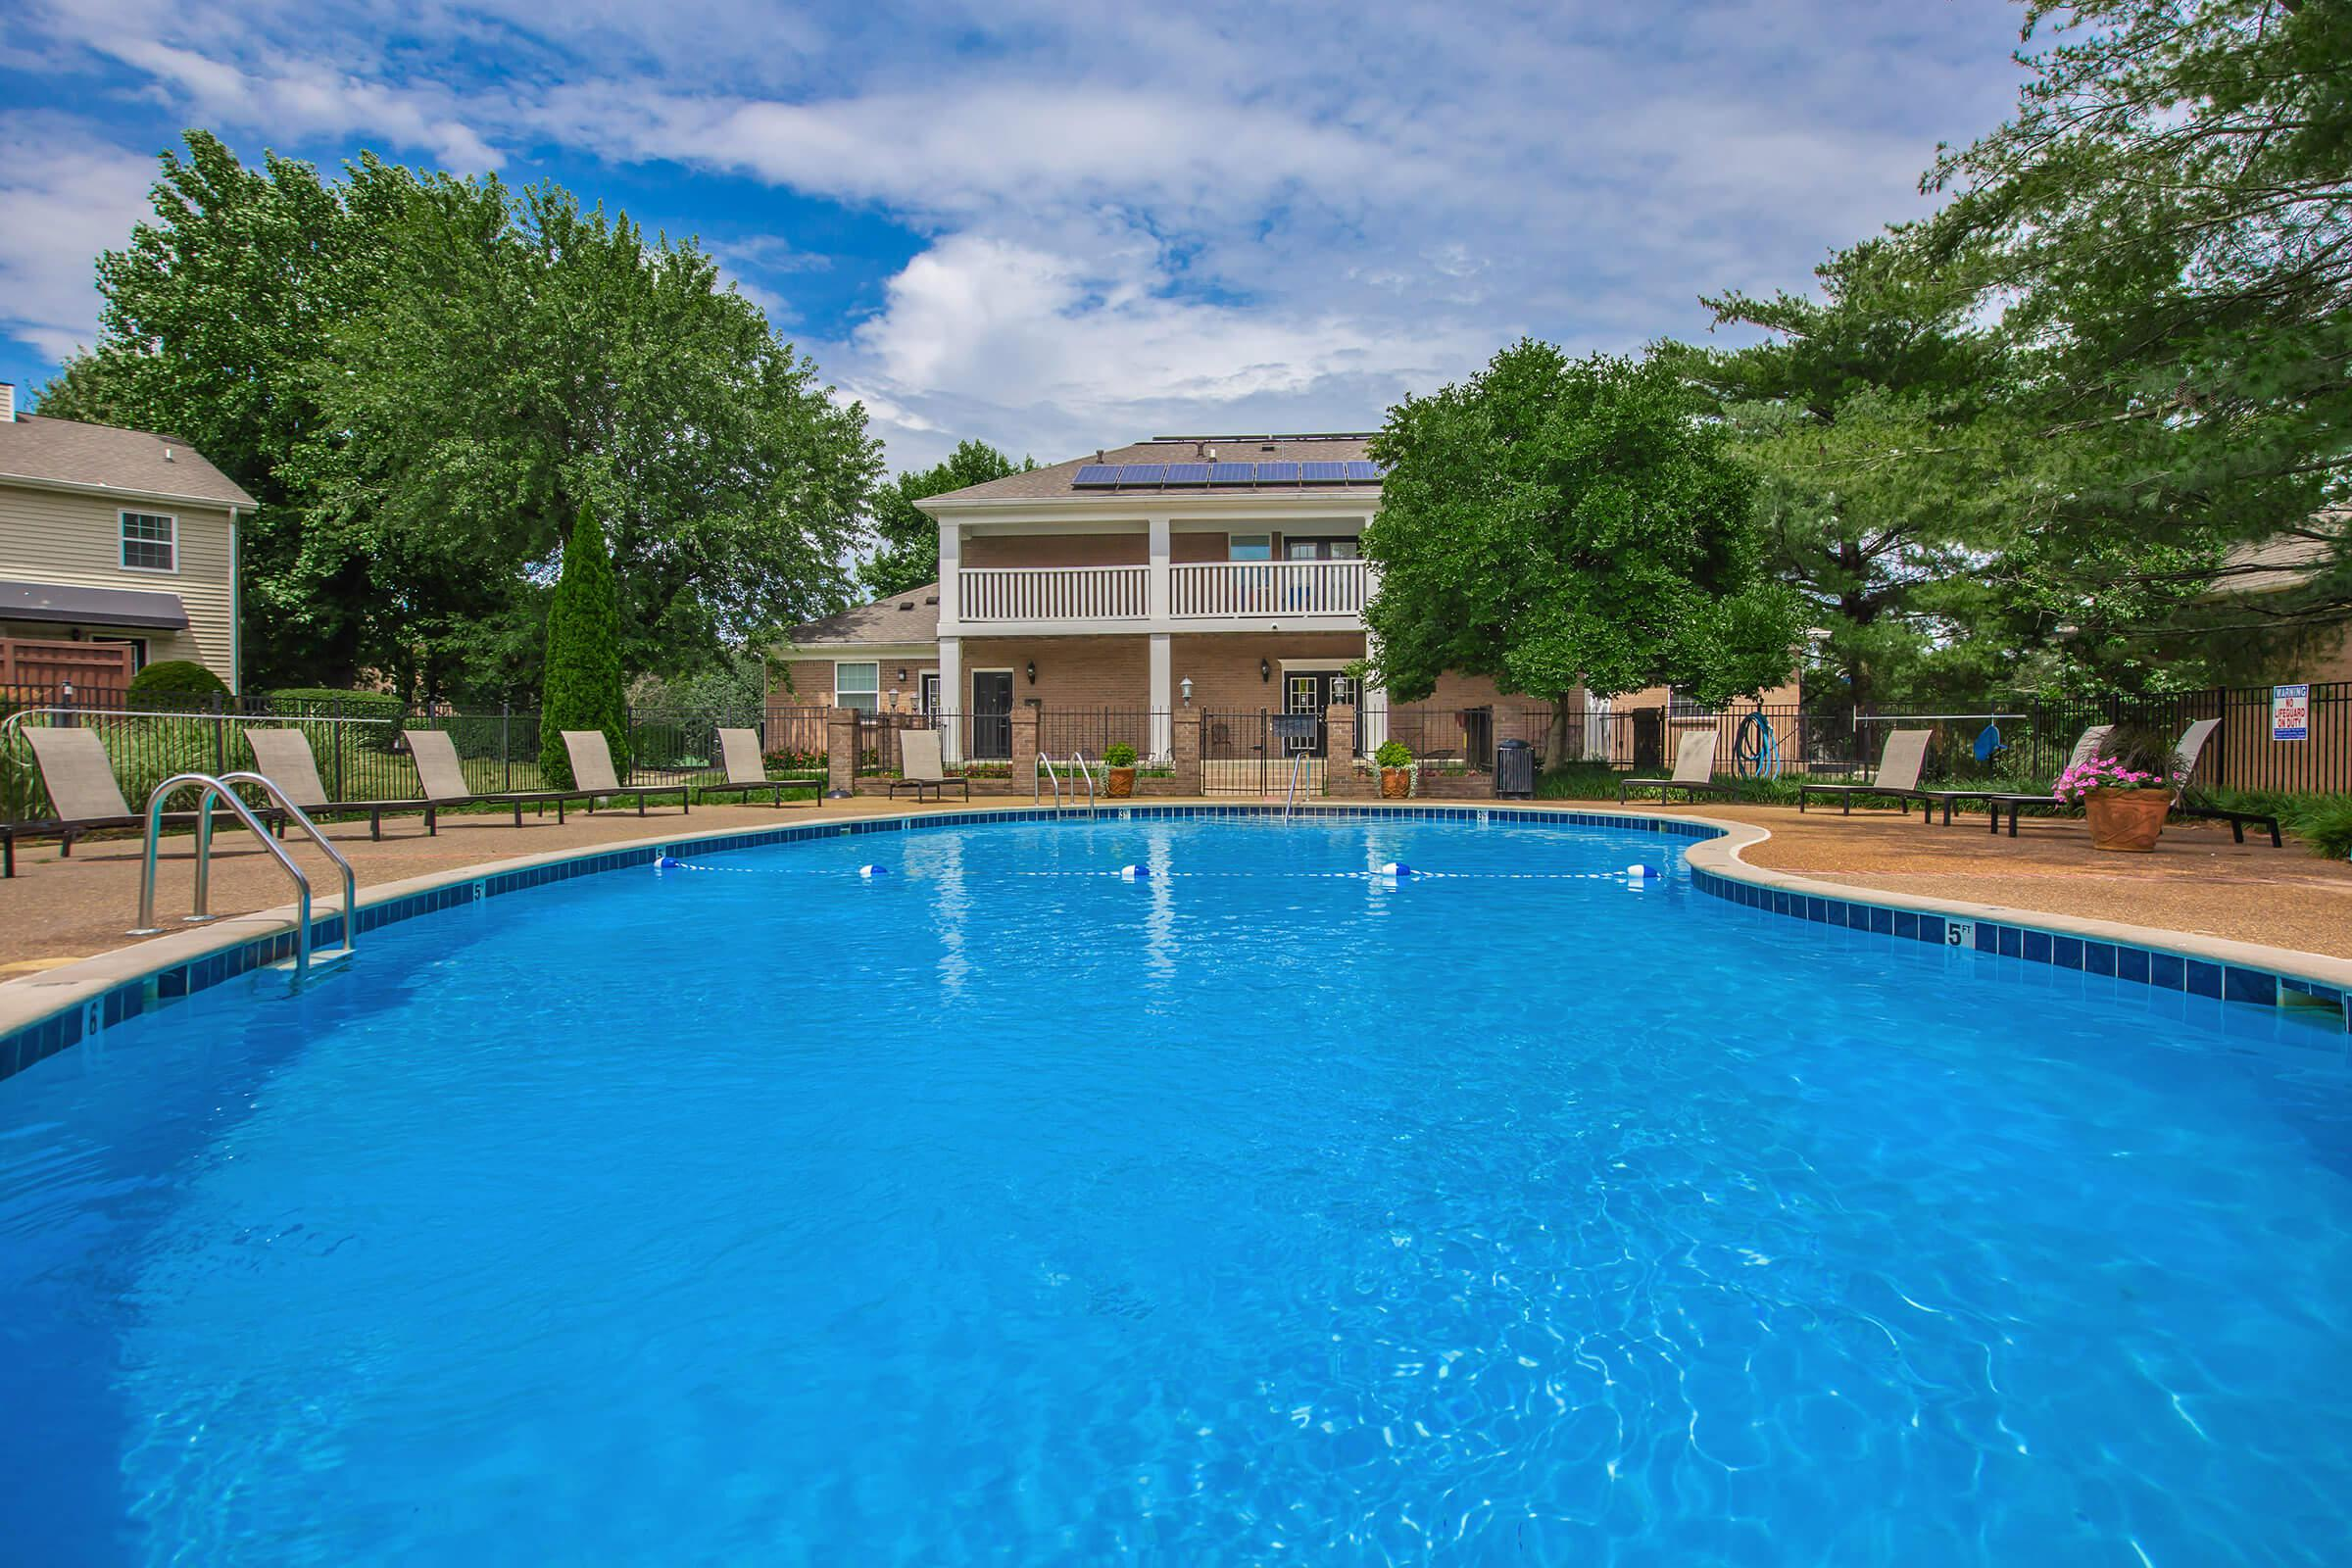 Shimmering swimming pool at British Woods Apartments in Nashville, TN